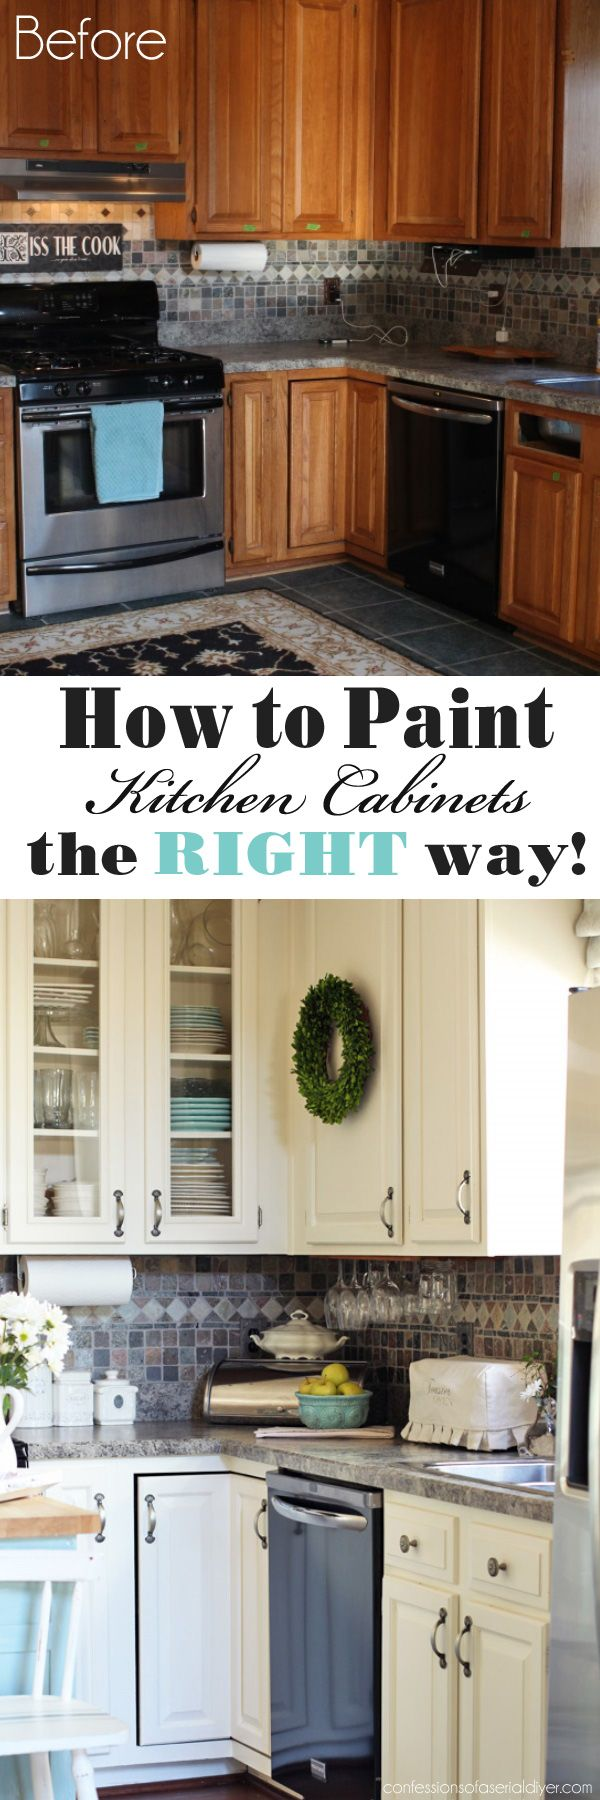 White Kitchen Cabinets Ideas top 25+ best painted kitchen cabinets ideas on pinterest